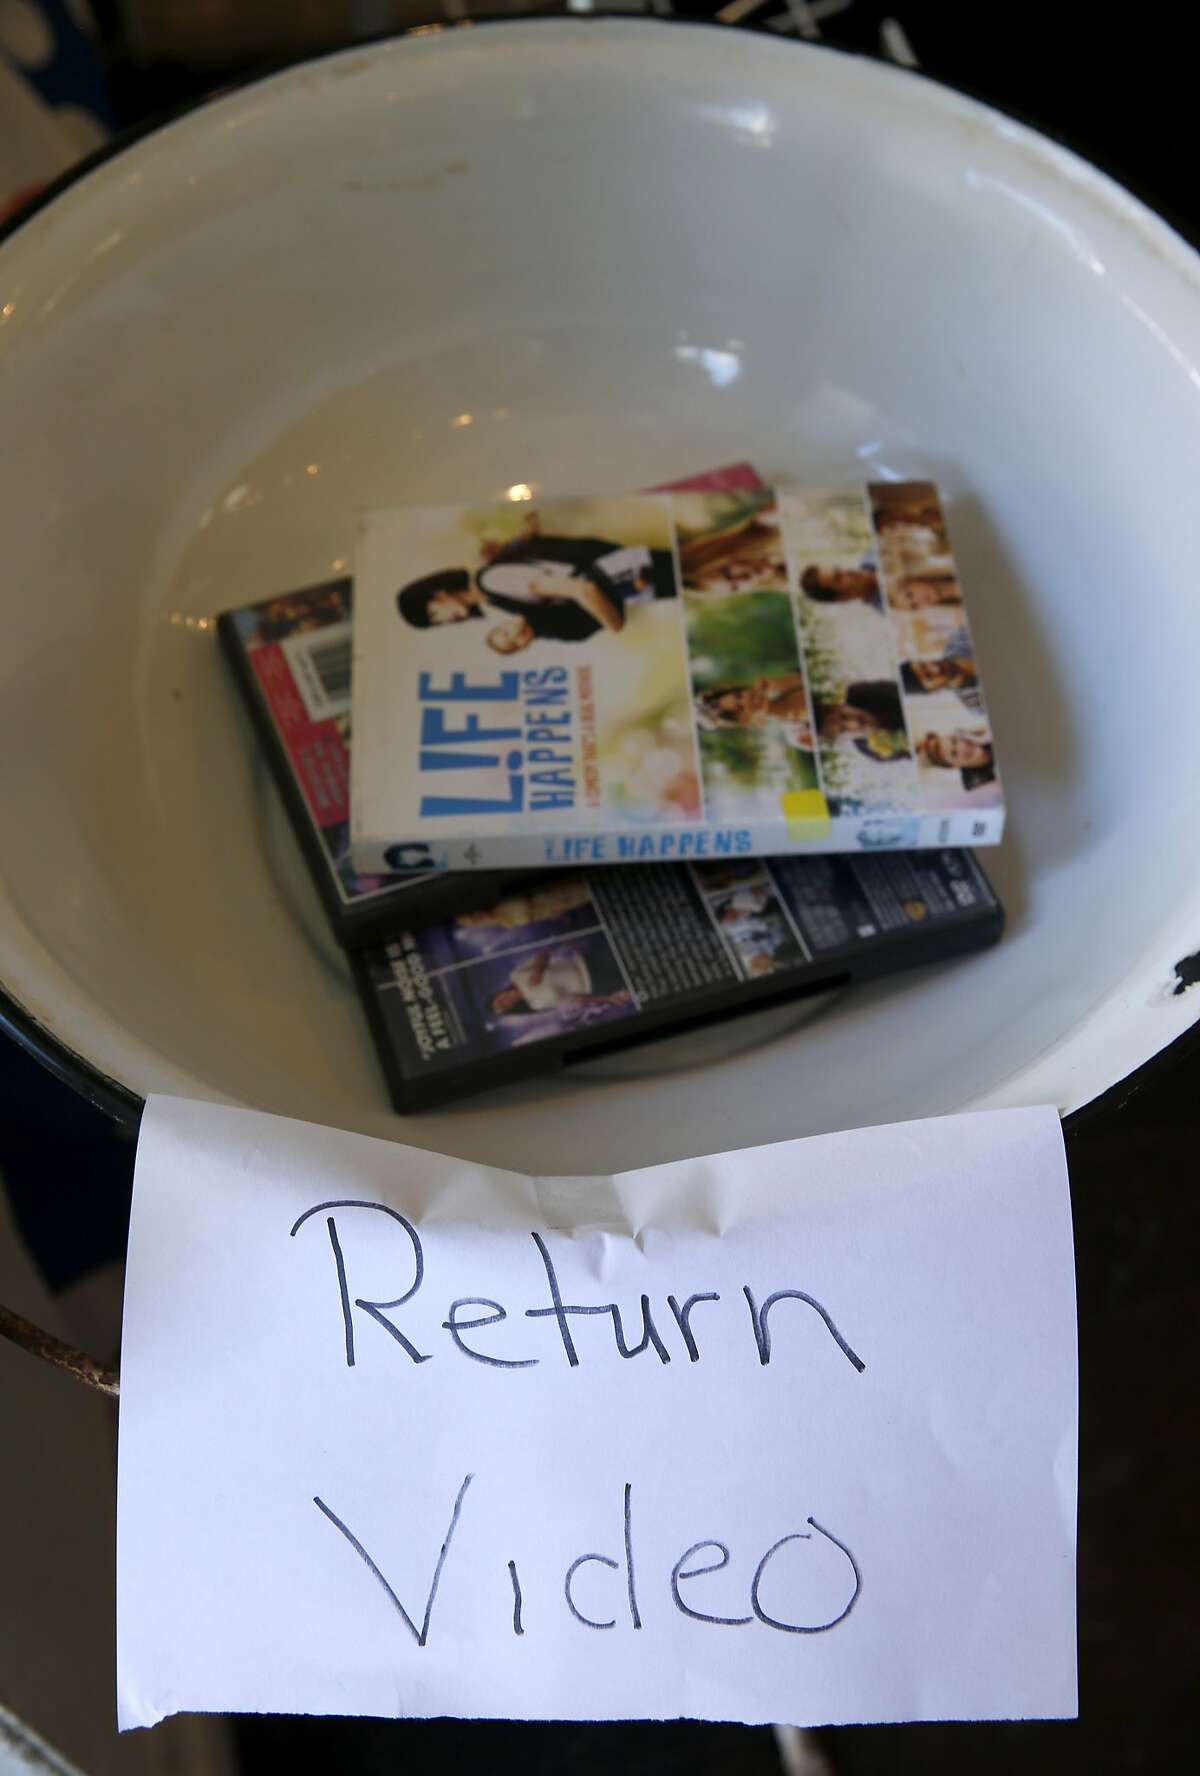 Rentals are returned to a metal wash basin at the new Noe Valley location of Video Wave video rental shop in San Francisco, Calif. on Friday, Sept. 4, 2015. Believed to be the oldest video rental business in the city, Video Wave now shares the back end of a candy store after its lease expired at the original location around the corner.